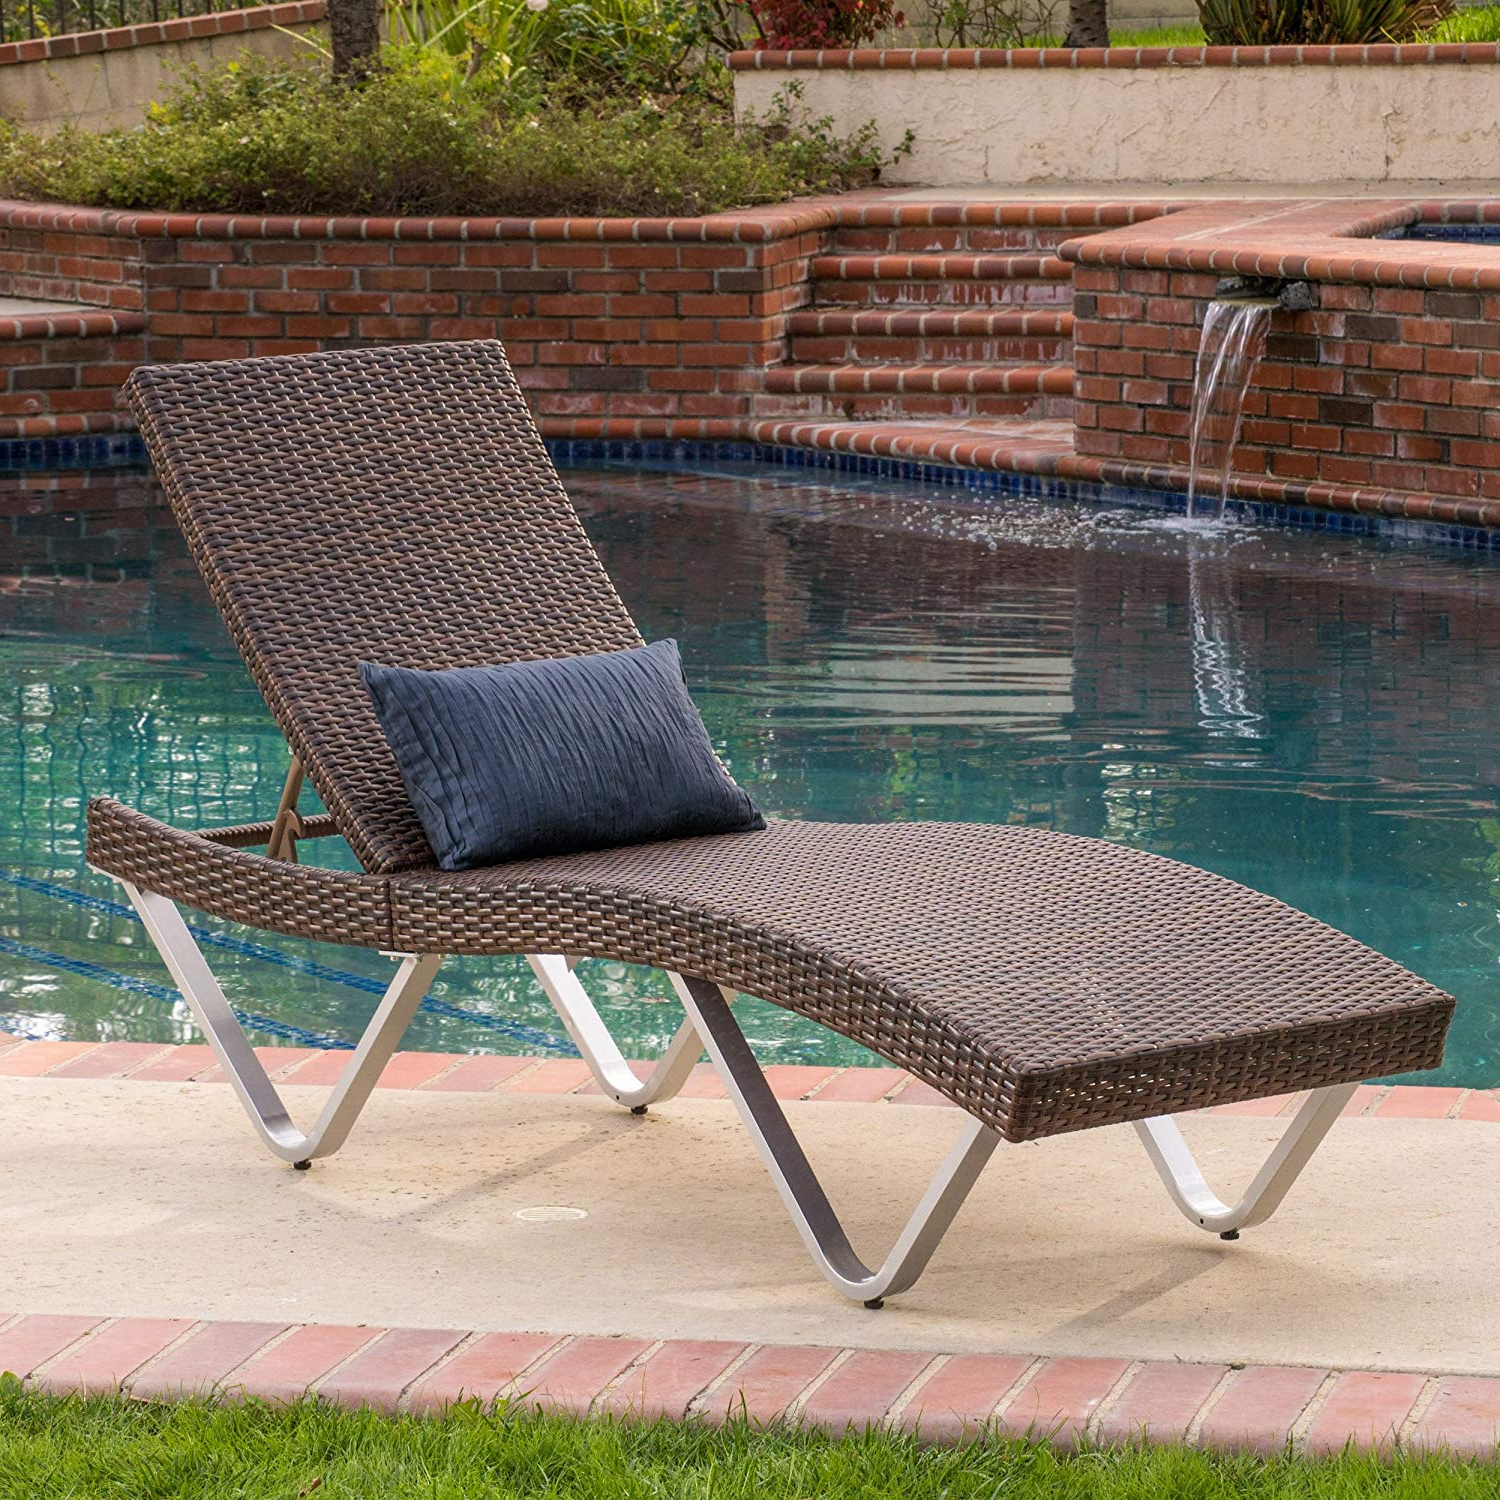 Most Current Cheap Aluminum Patio Chaise Lounge, Find Aluminum Patio In Lattice Outdoor Patio Pool Chaise Lounges With Wheels And Cushion (Gallery 24 of 25)